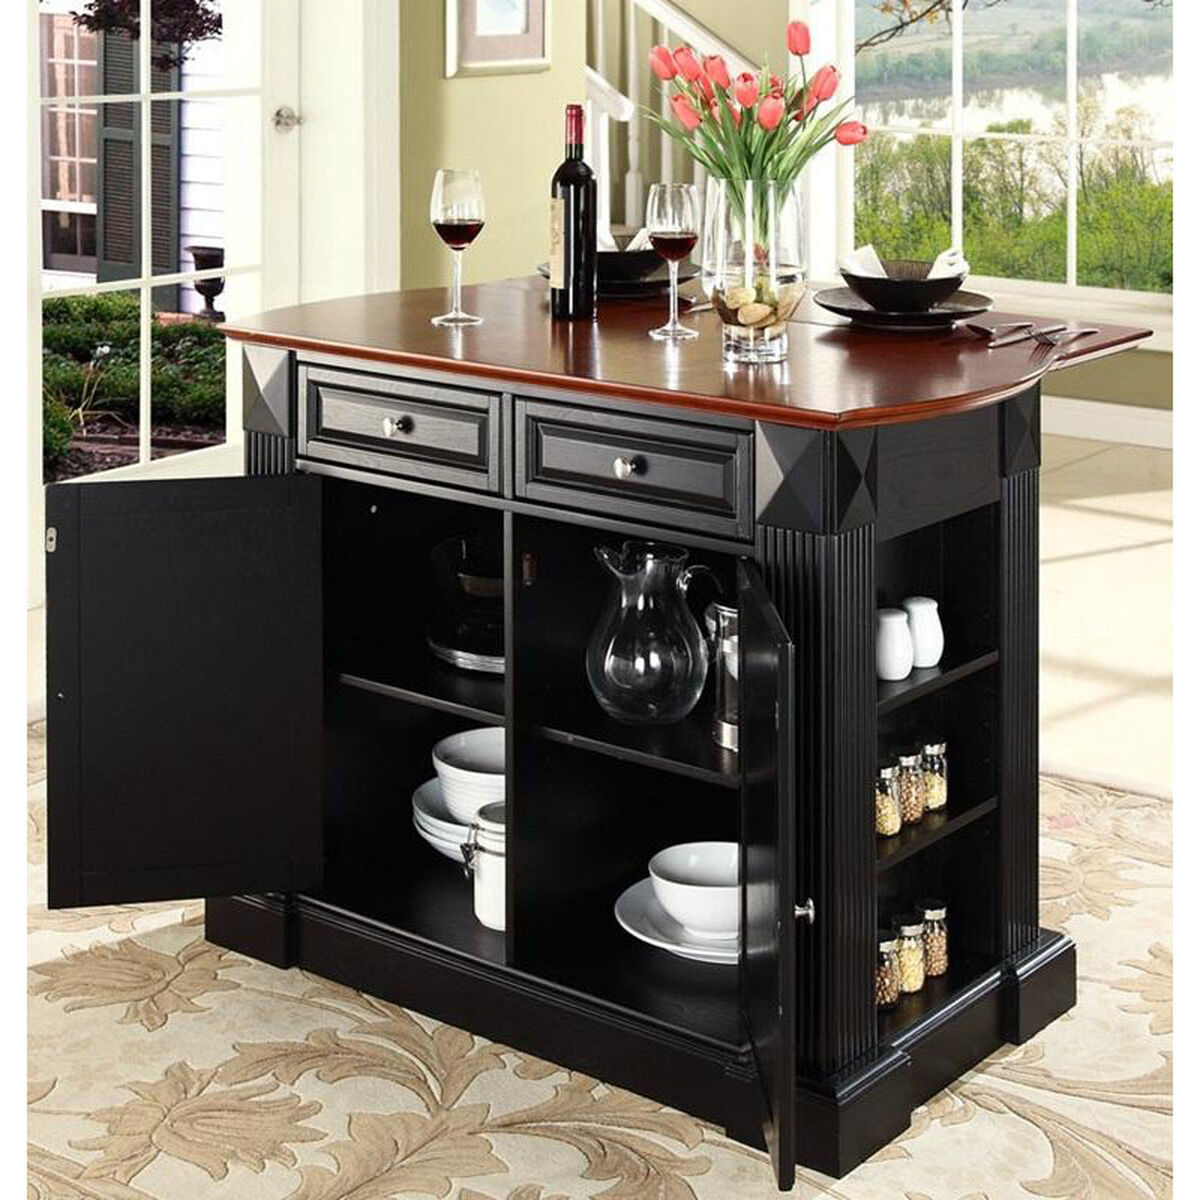 Our drop leaf breakfast bar top kitchen island cherry and black finish is on sale